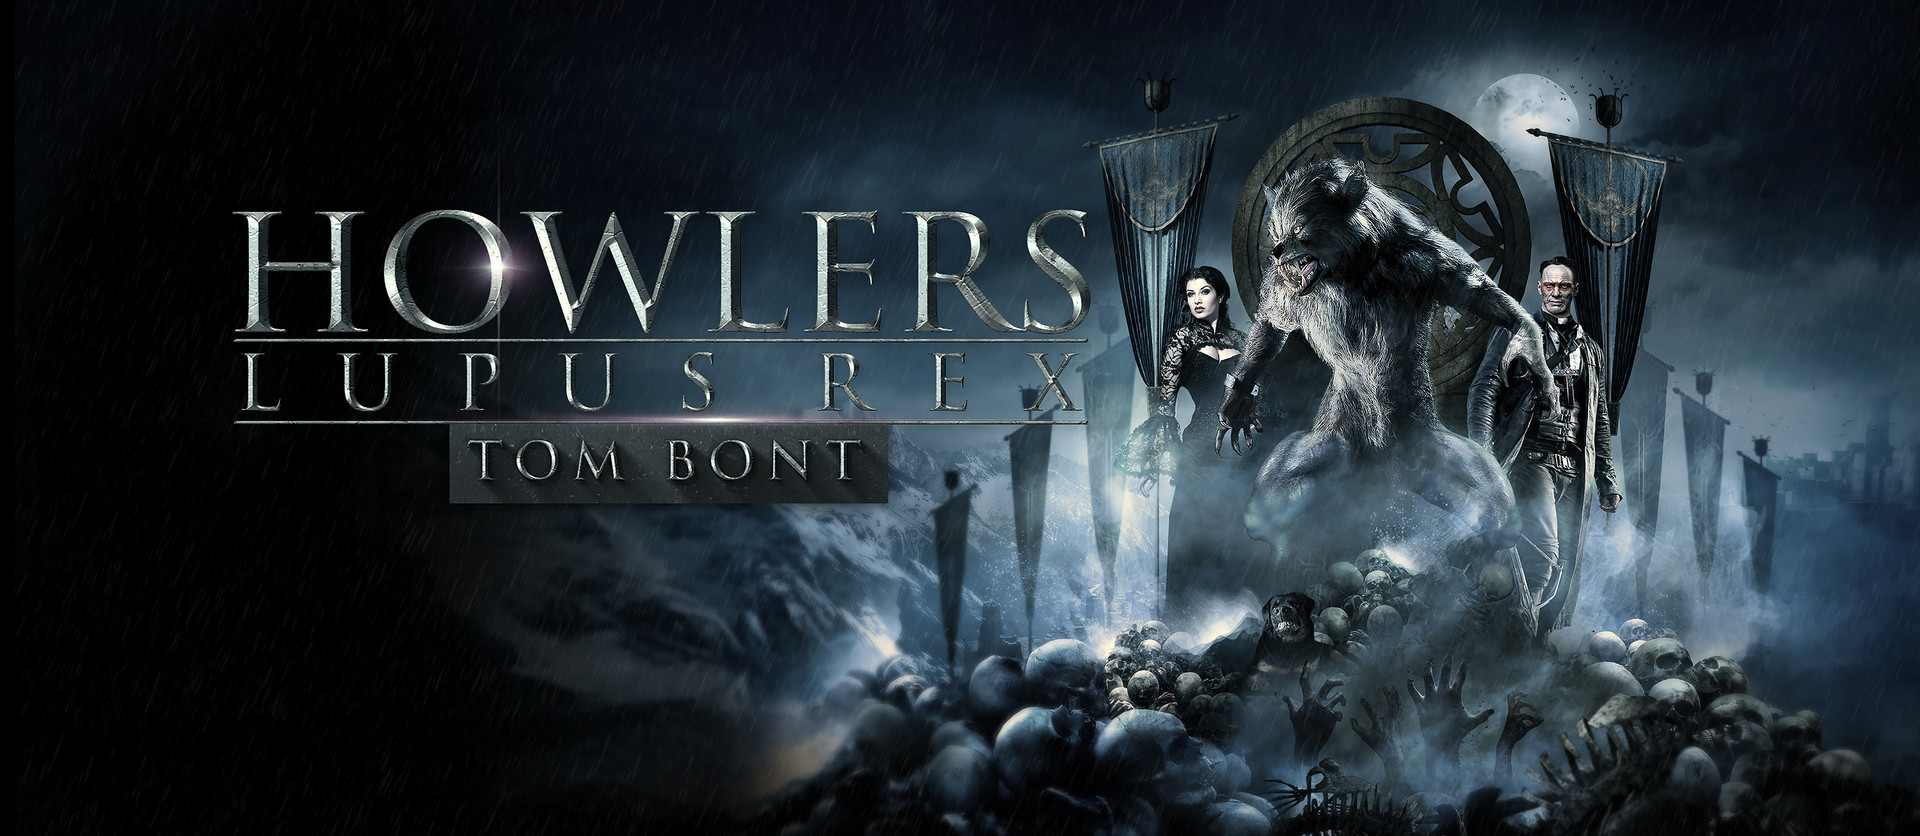 Howlers-Cover-TomBontl-by Sabercore23.jp